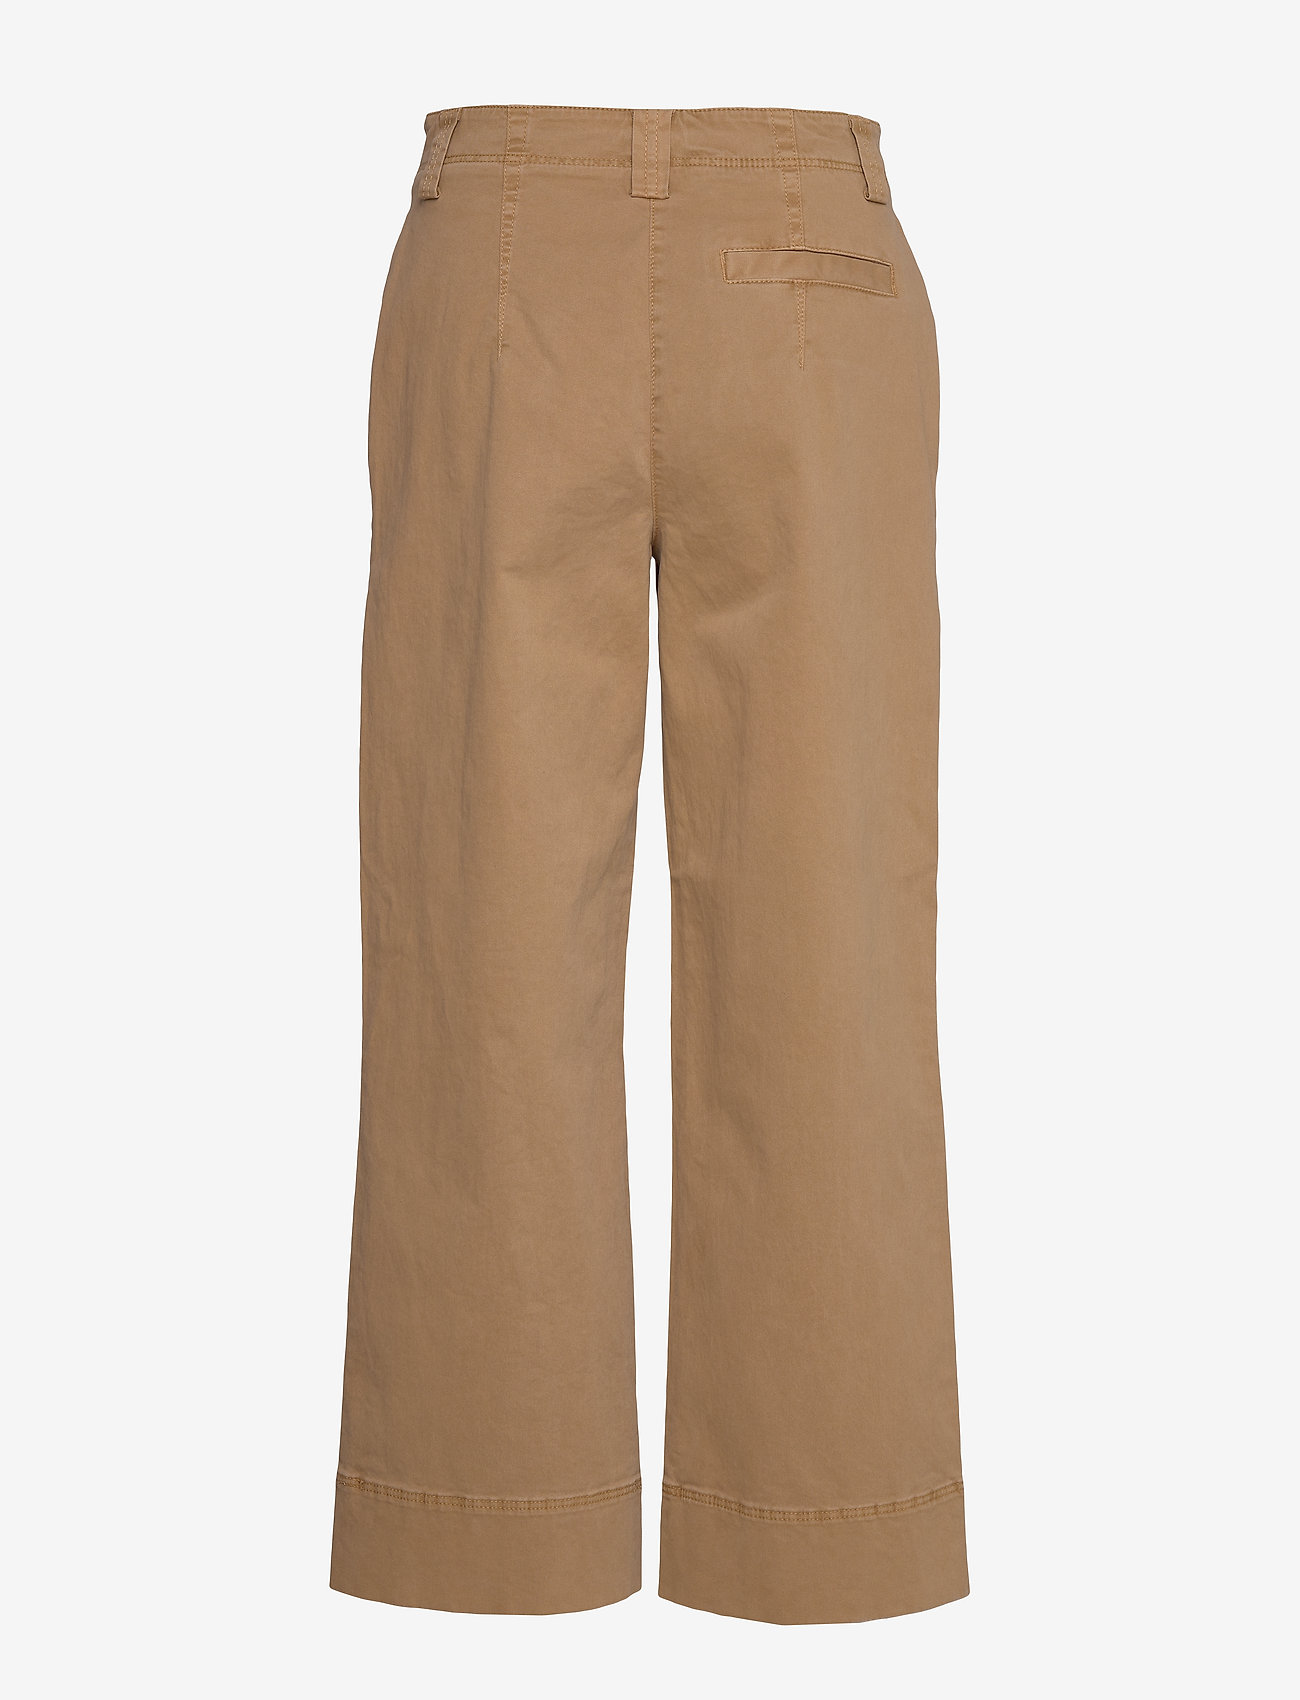 Pants, Wide Leg, High Rise, Cropped (Mild Tobacco) (1071.85 kr) - Marc O'Polo